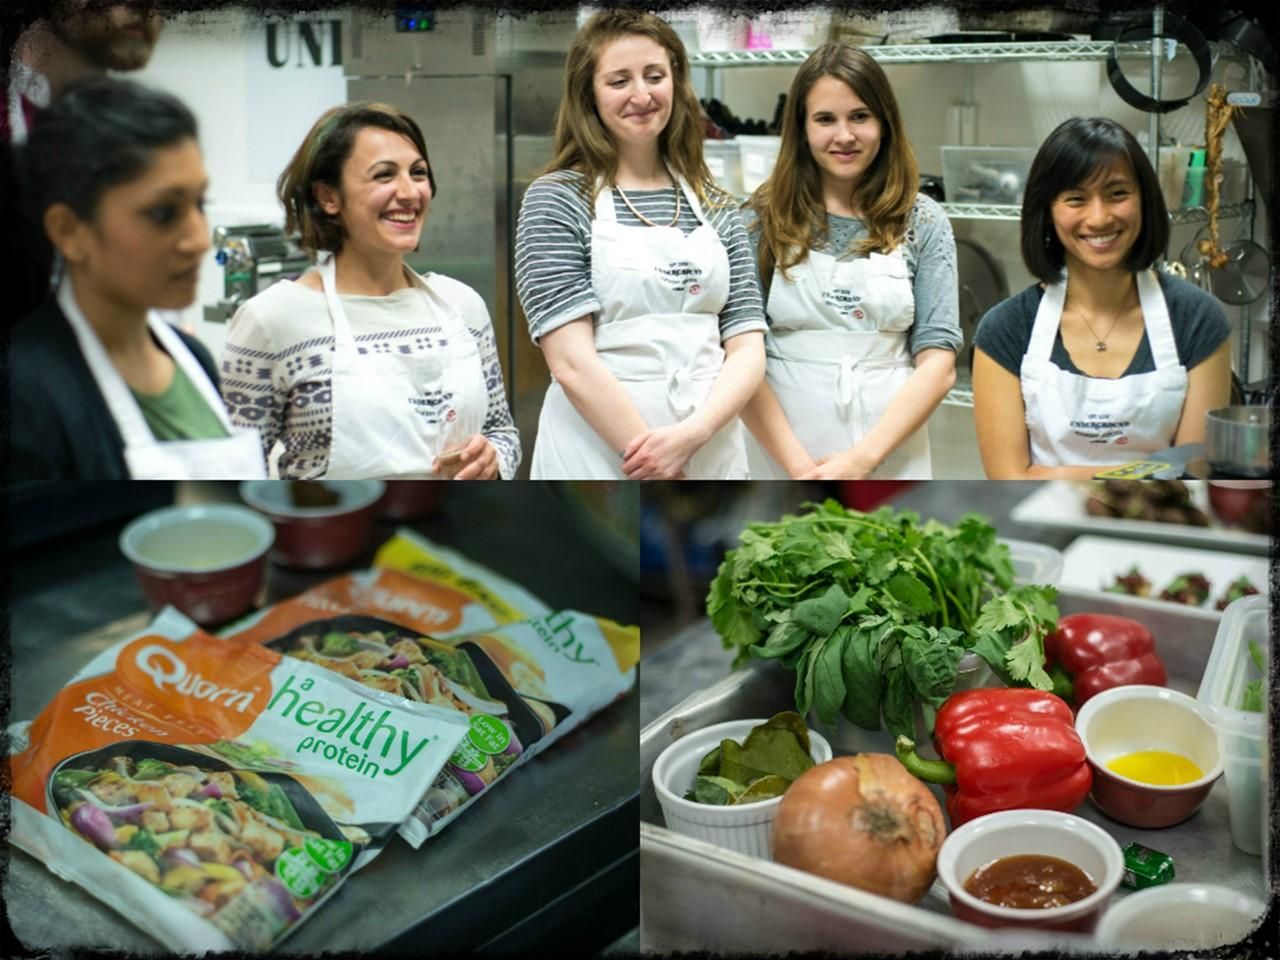 Cookery School commences - motherhooddiaries.com